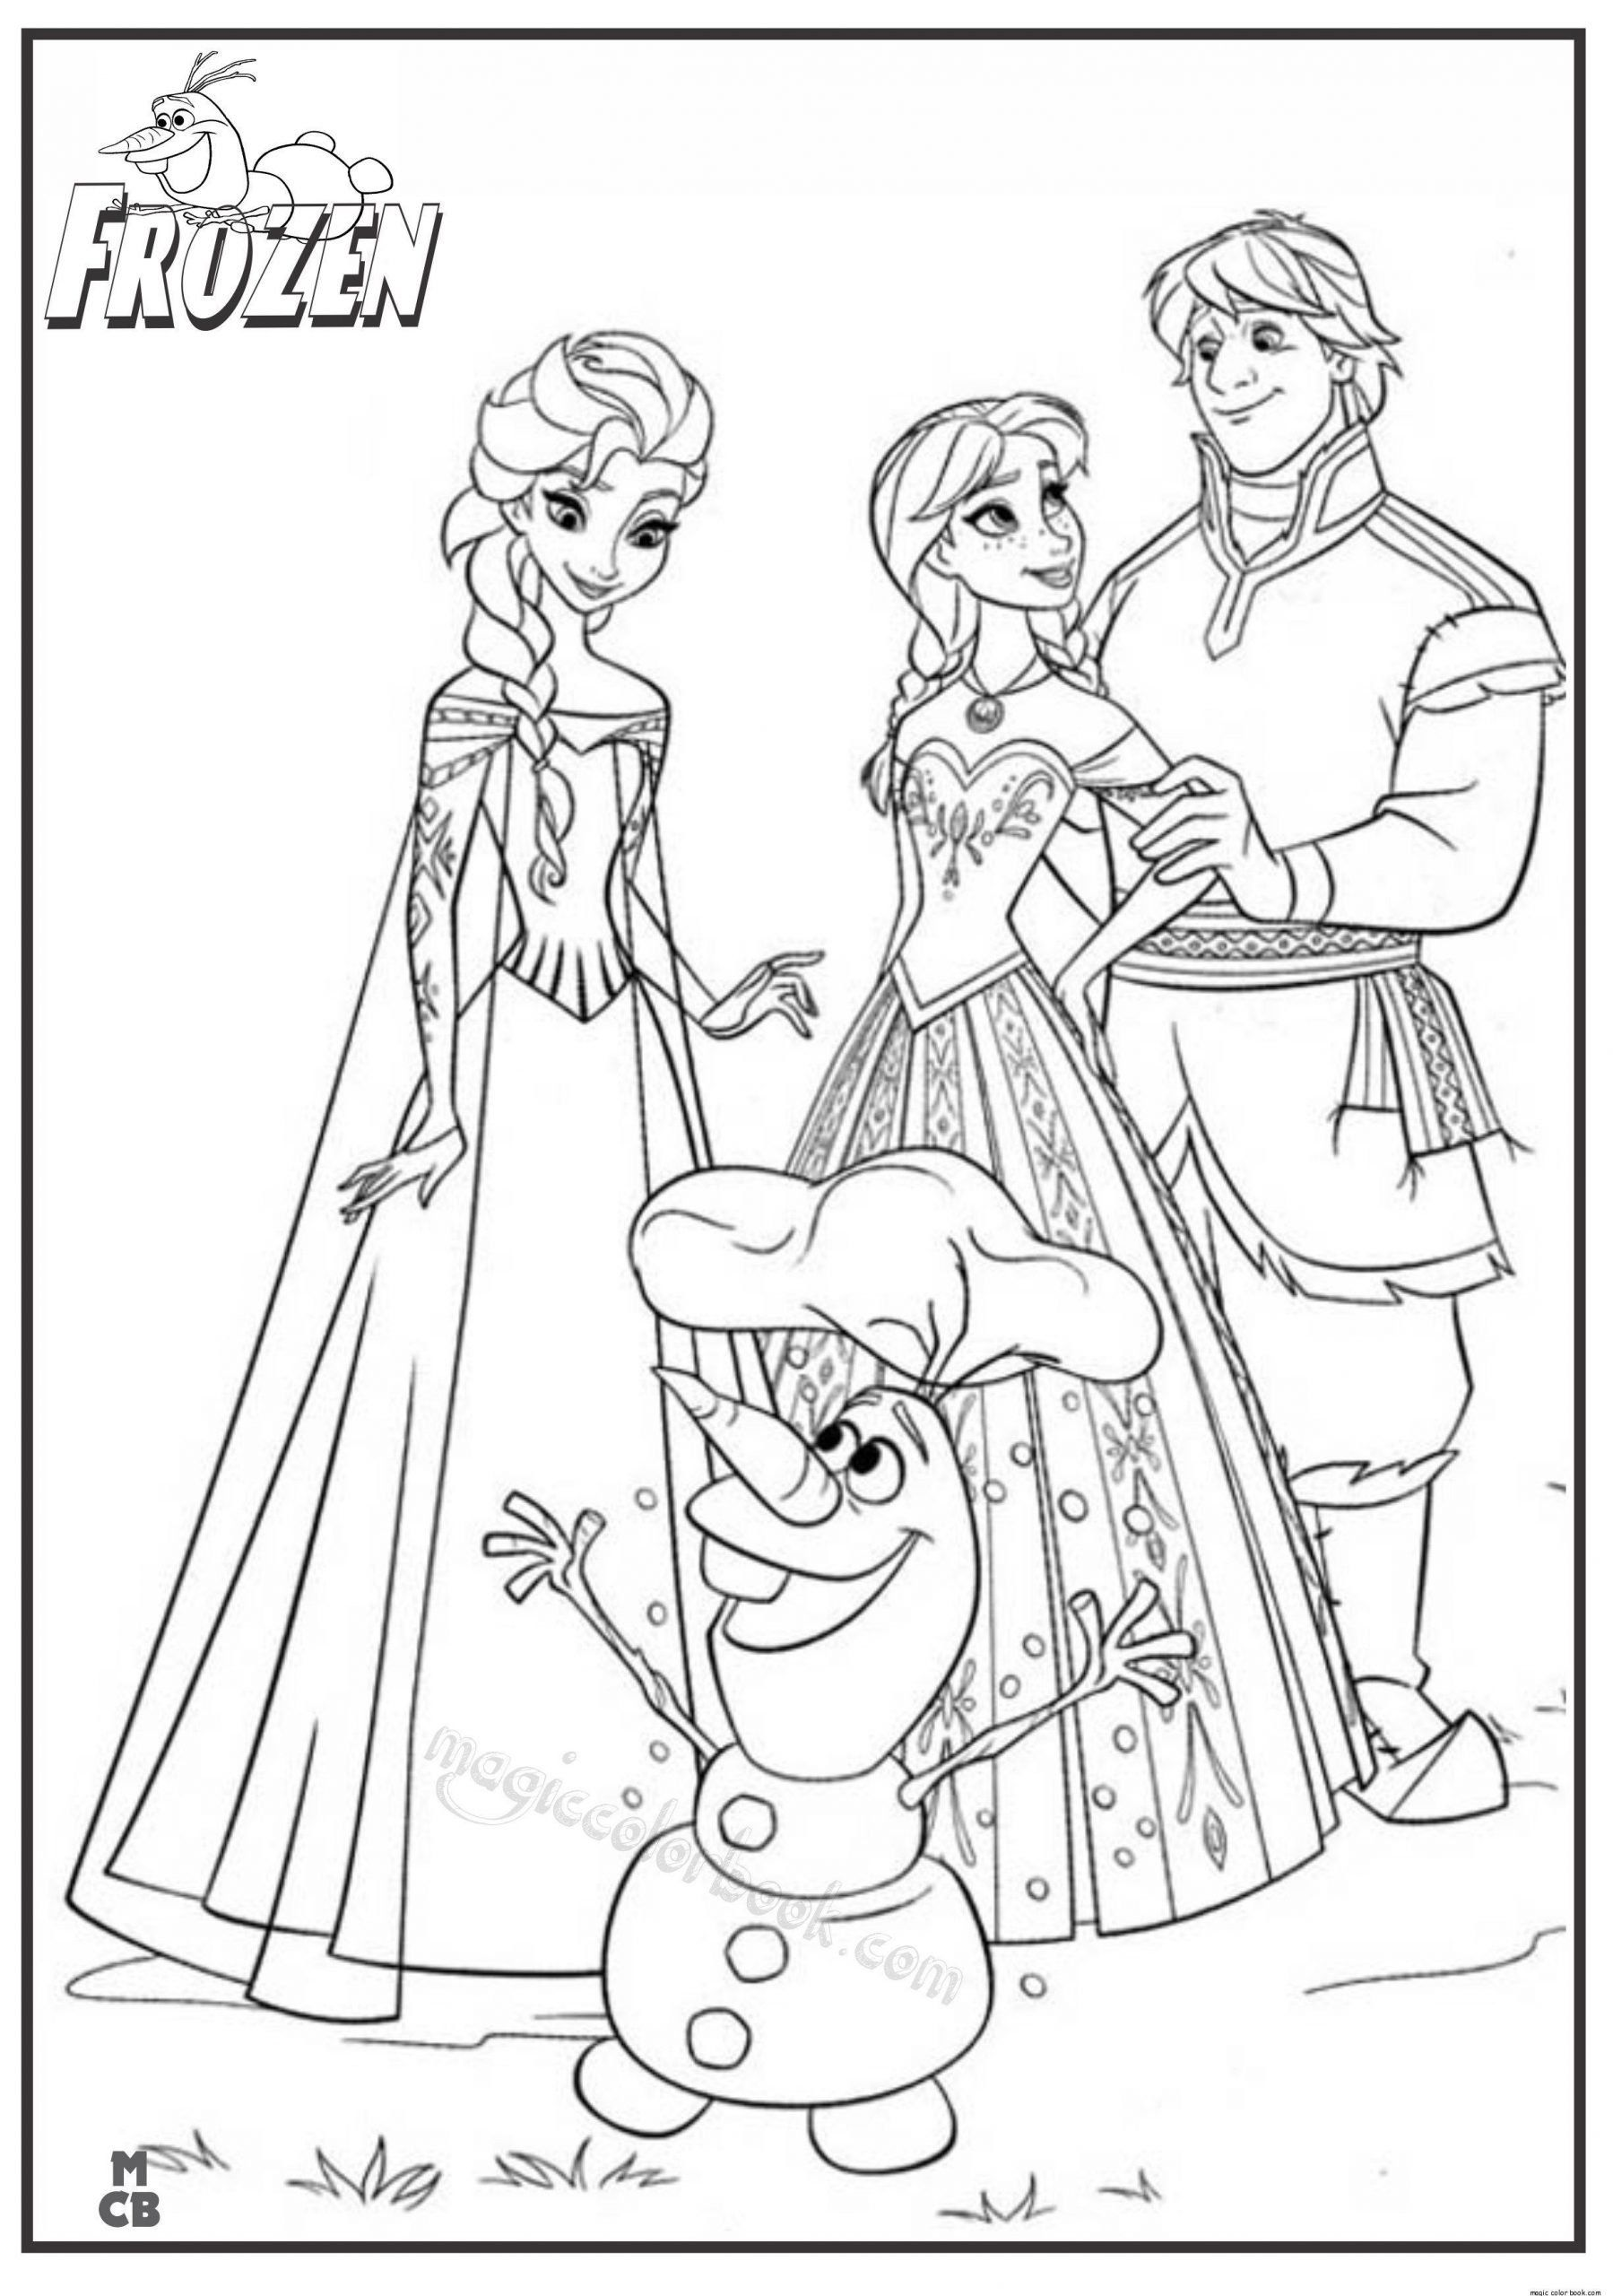 Frozen Coloring Pages Free 24 Excellent Picture Of Frozen Coloring Pages Free In 2020 Elsa Coloring Pages Frozen Coloring Disney Princess Coloring Pages